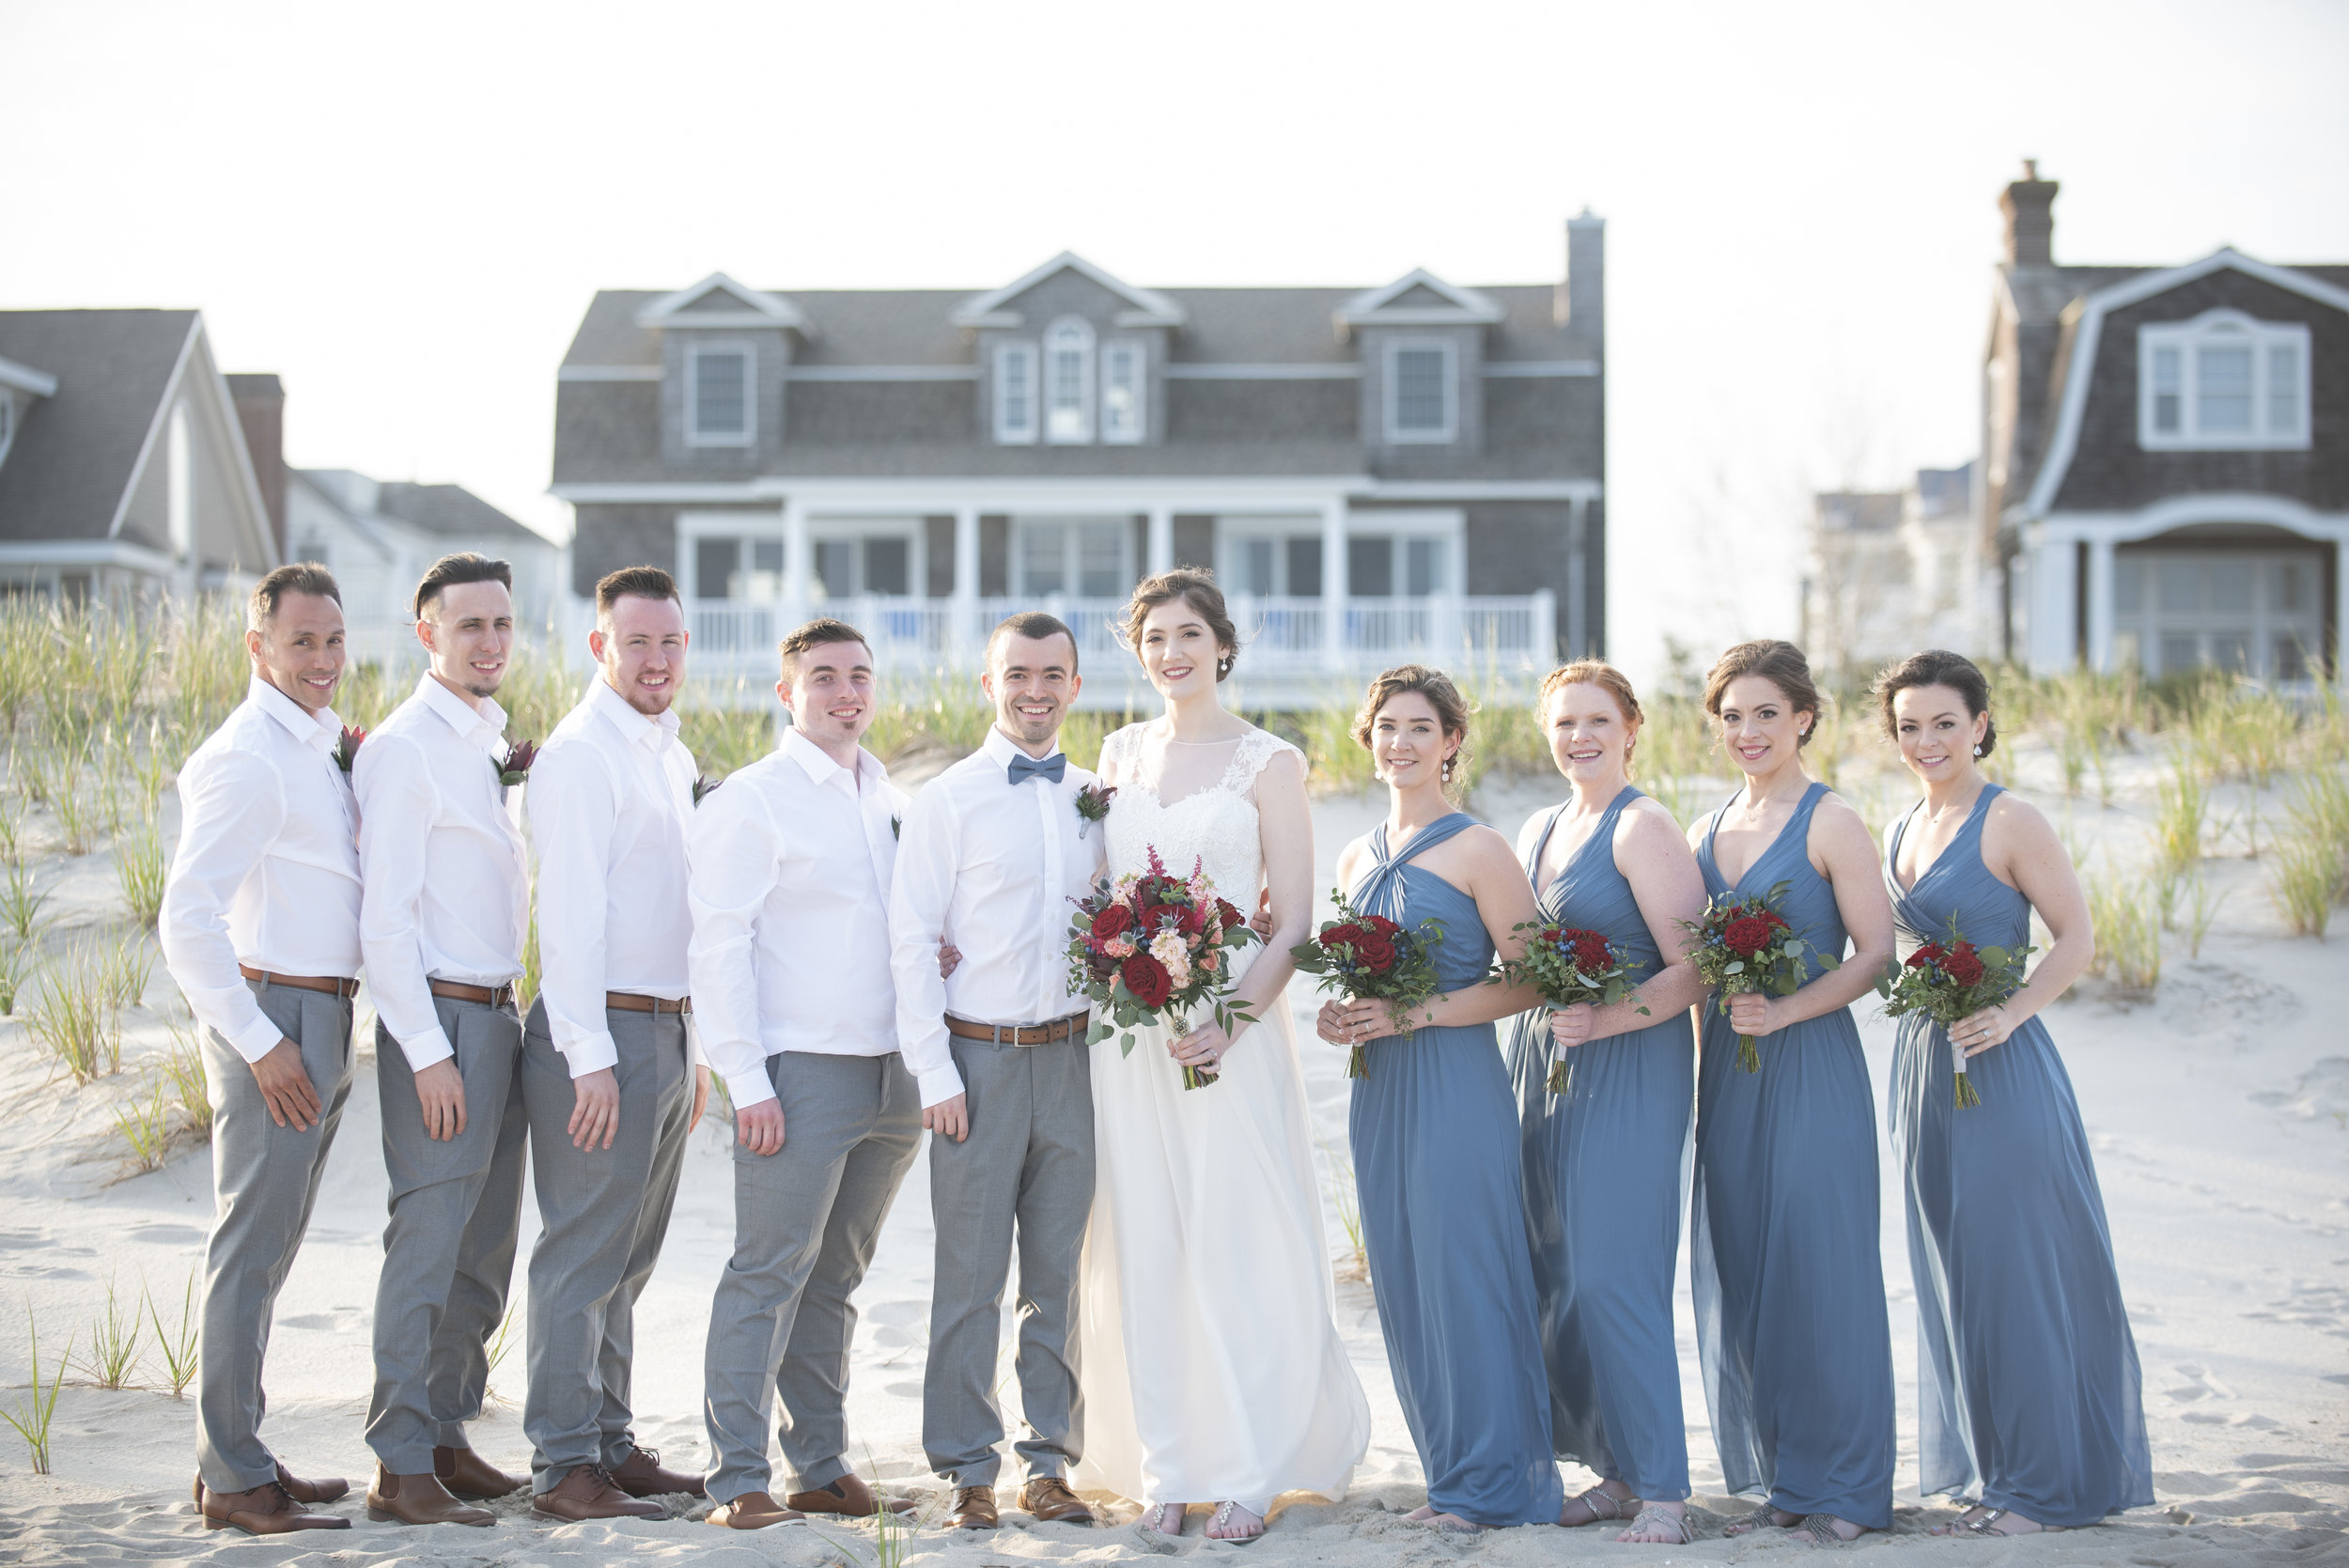 cape may wedding in cape may NJ